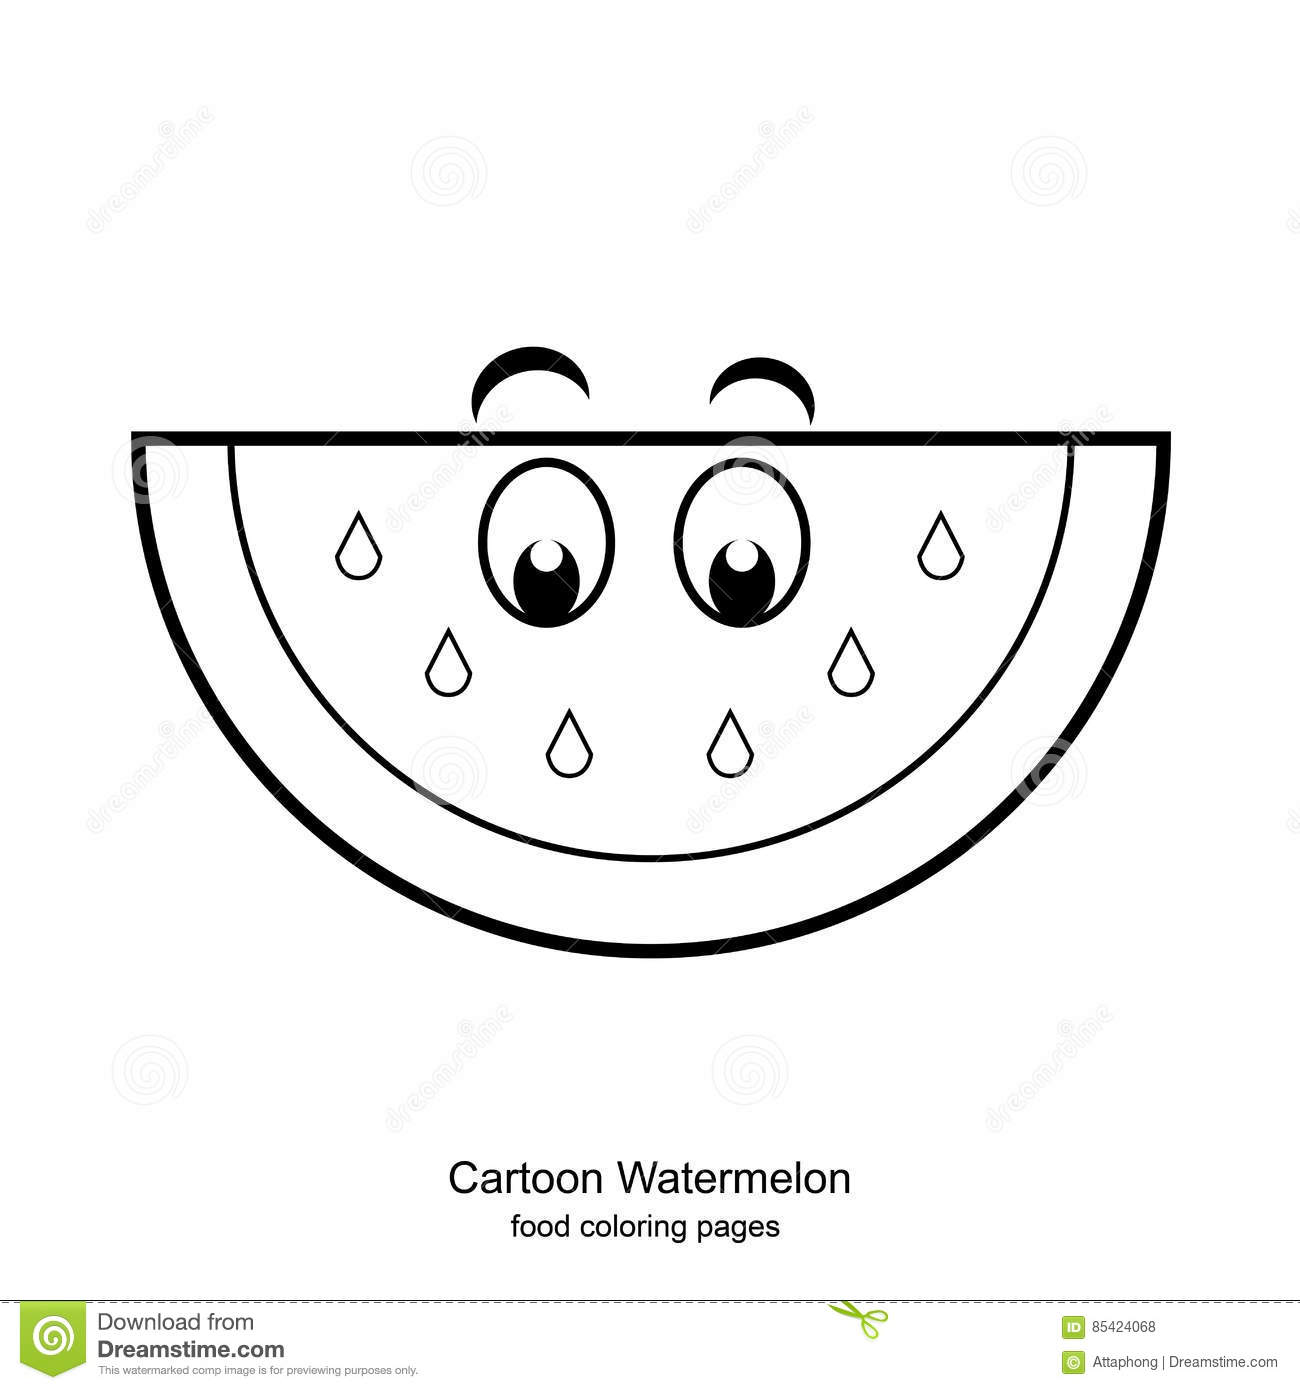 Cartoon Watermelon Coloring Pages Vector Stock Vector - Illustration ...